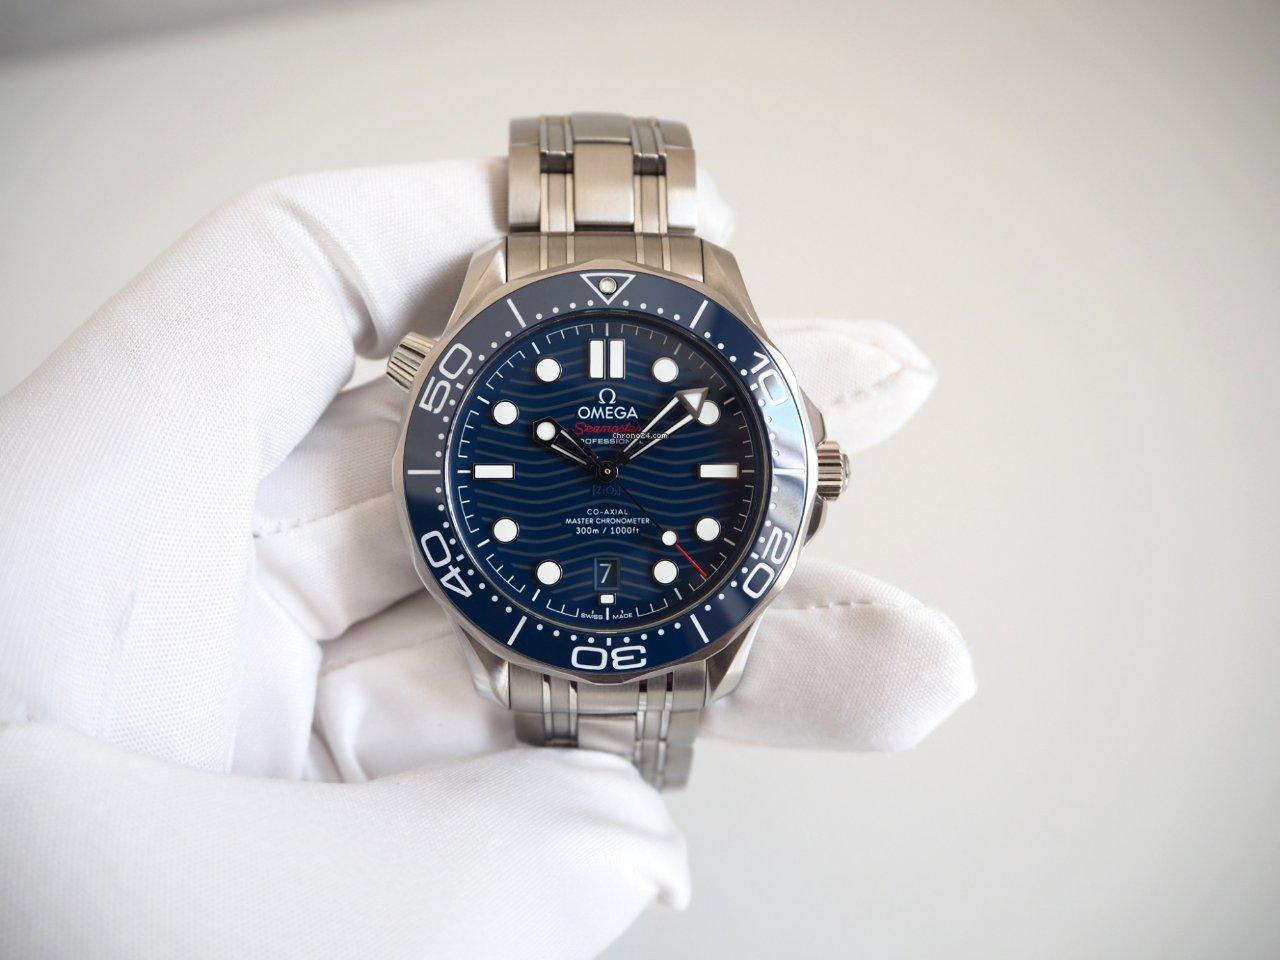 Omega seamaster diver 300 m for au 5 430 for sale from a trusted seller on chrono24 for Omega diver